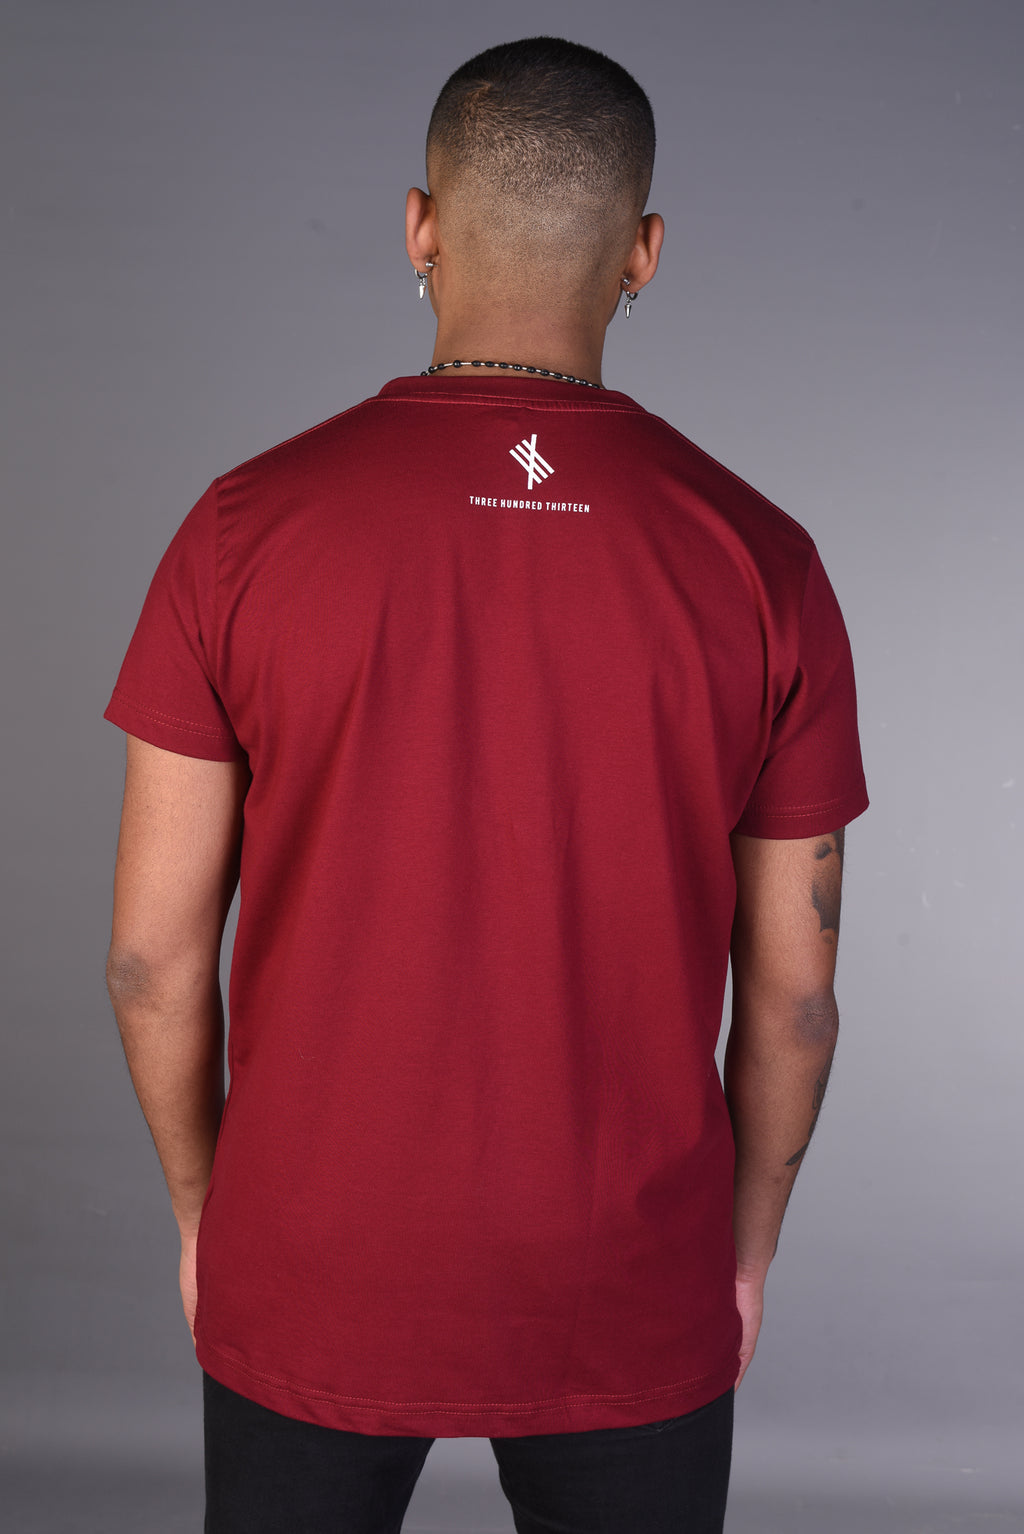 THREE HUNDRED THIRTEEN - Maroon Tee